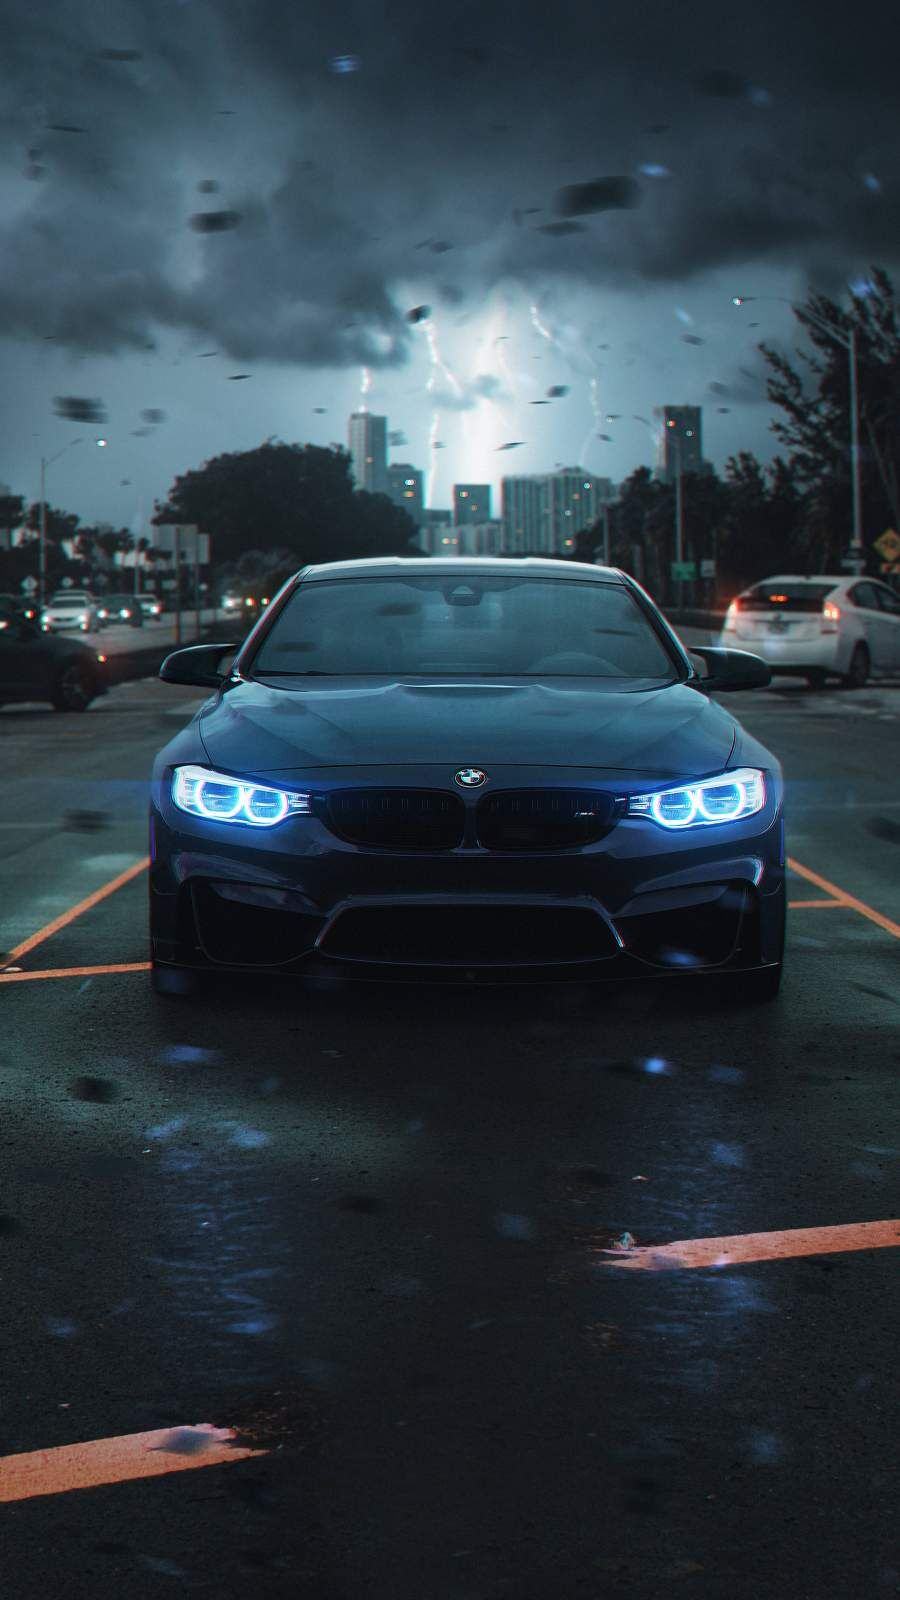 Iphone Wallpapers For Iphone 8 Iphone 8 Plus Iphone 6s Iphone 6s Plus Iphone X And Ipod Touch High Quali In 2020 Car Iphone Wallpaper Bmw Wallpapers Dream Cars Bmw